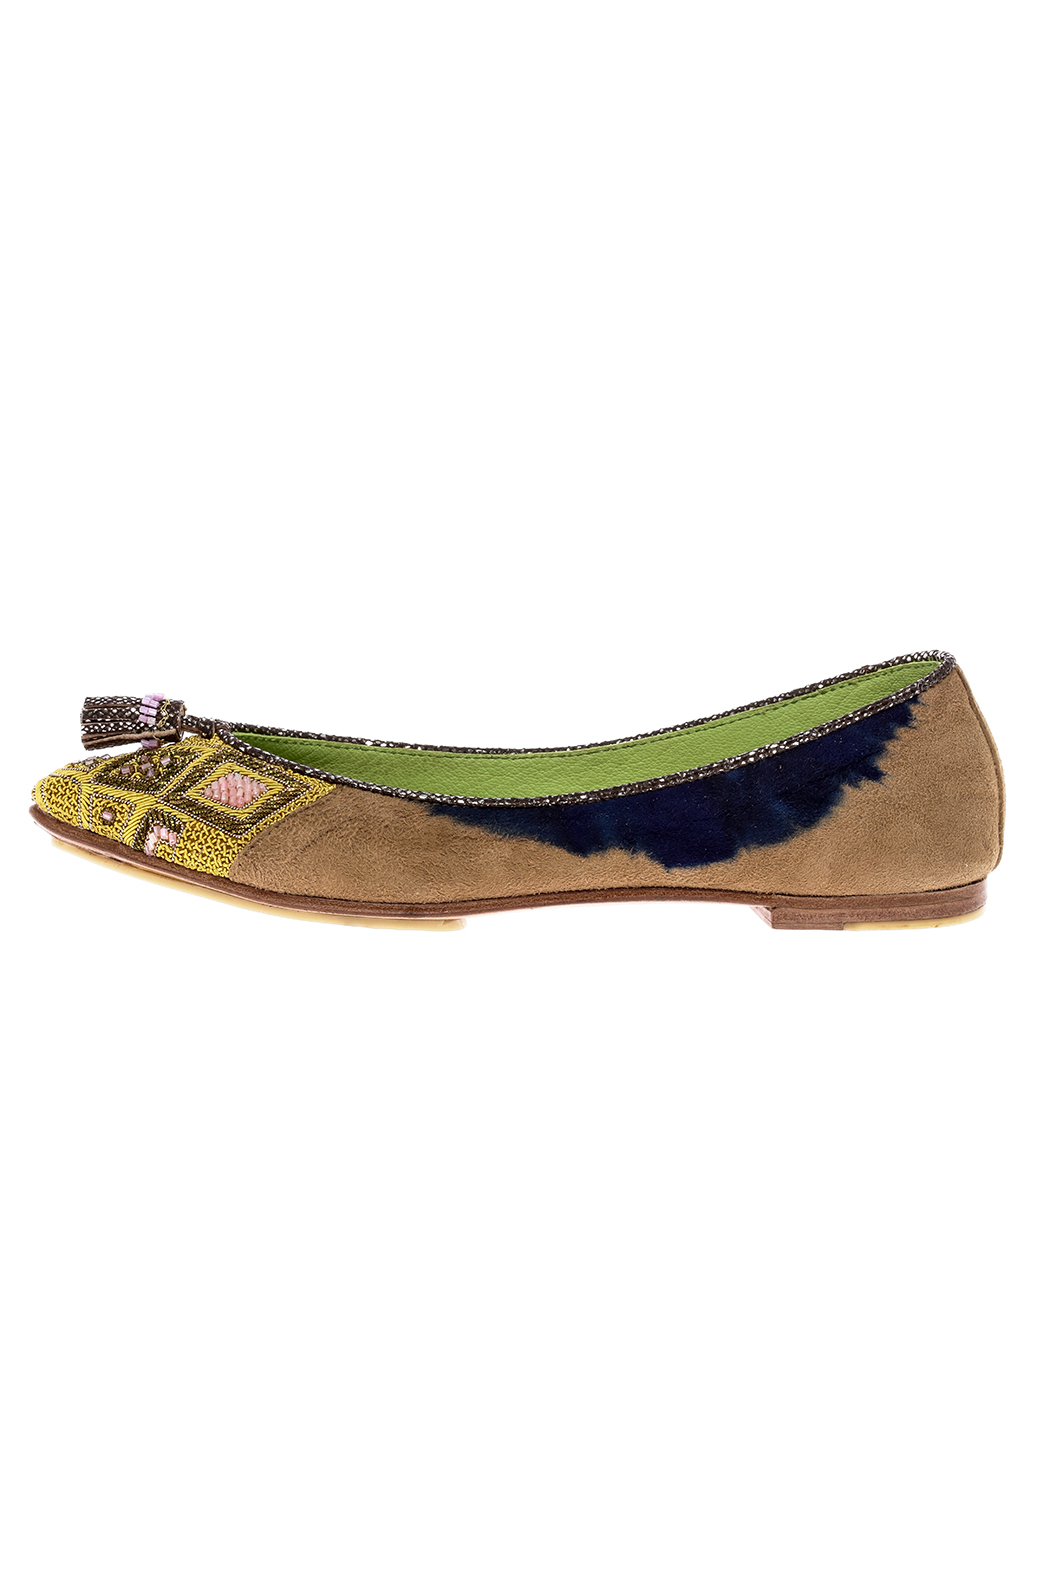 Meher Kakalia Beaded Point Ballet Flat - Main Image